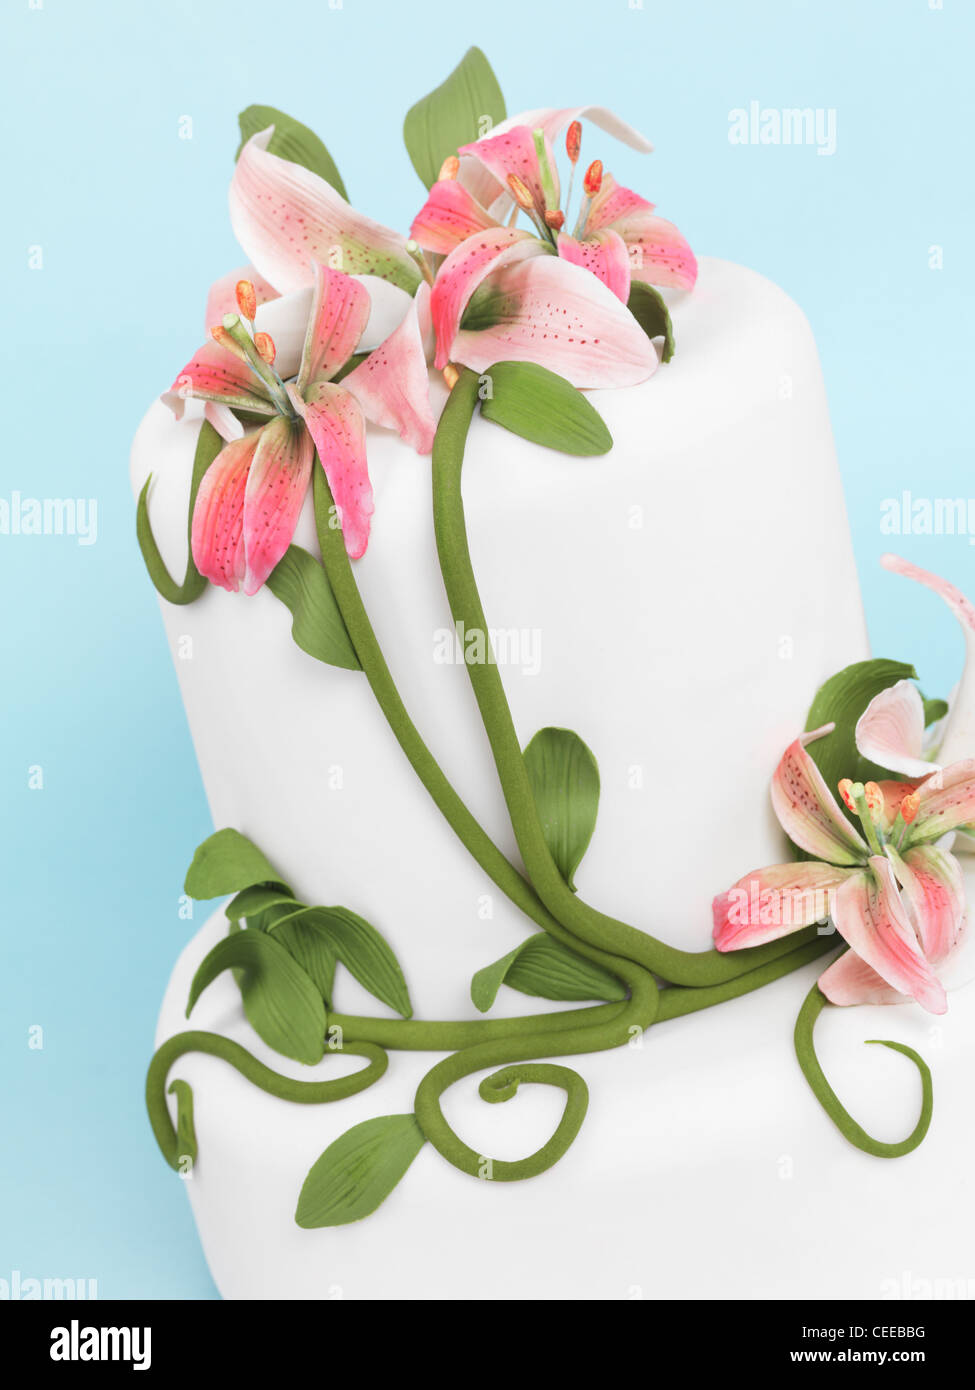 Fancy cake decorated with lilies isolated on blue background - Stock Image